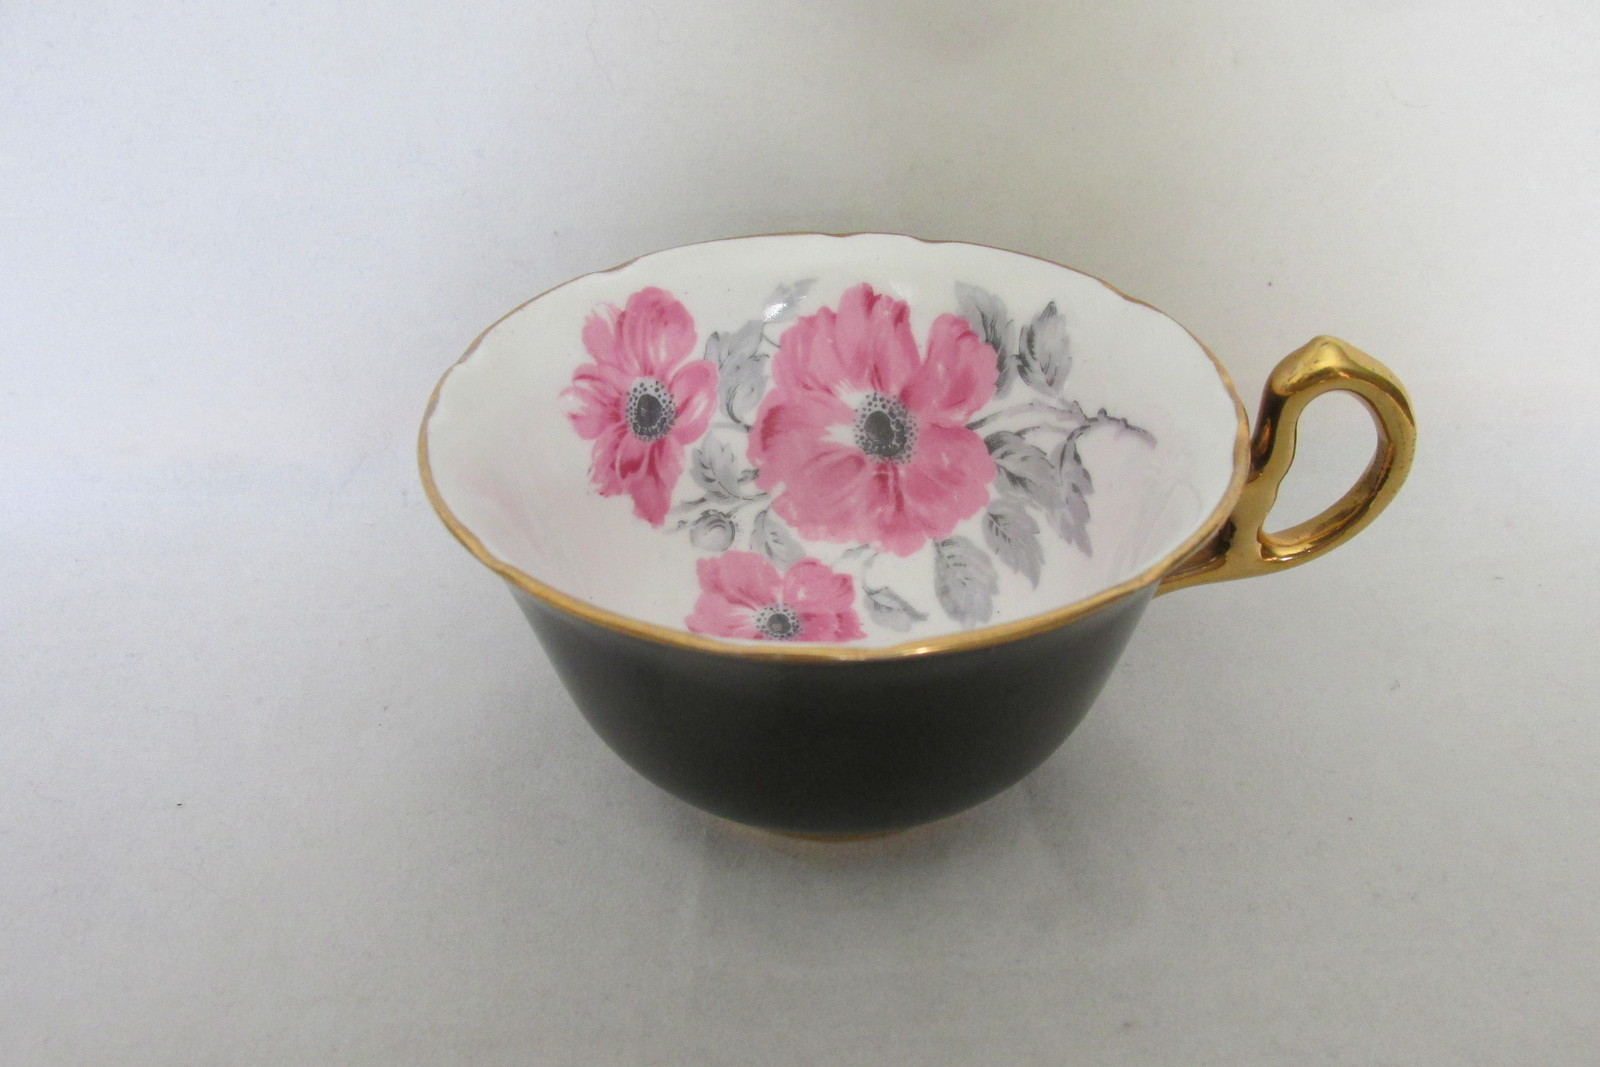 Vintage Royal Stafford English Bone China Cup & Saucer - Black with Pink Roses image 3